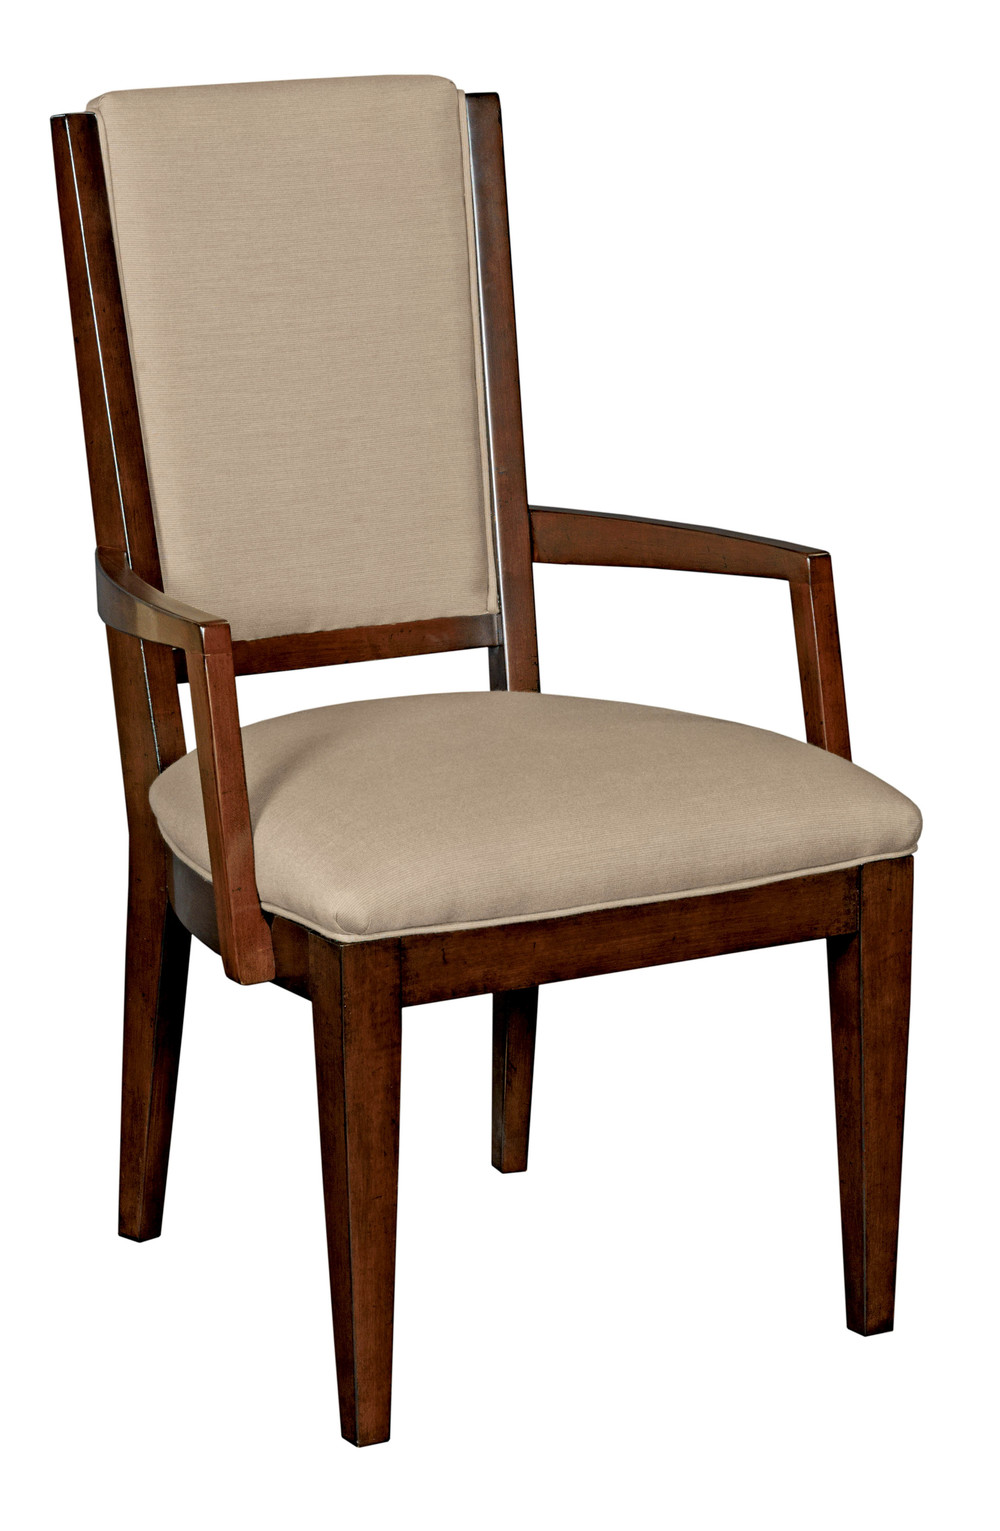 KINCAID FURNITURE CO, INC - Spectrum Arm Chair